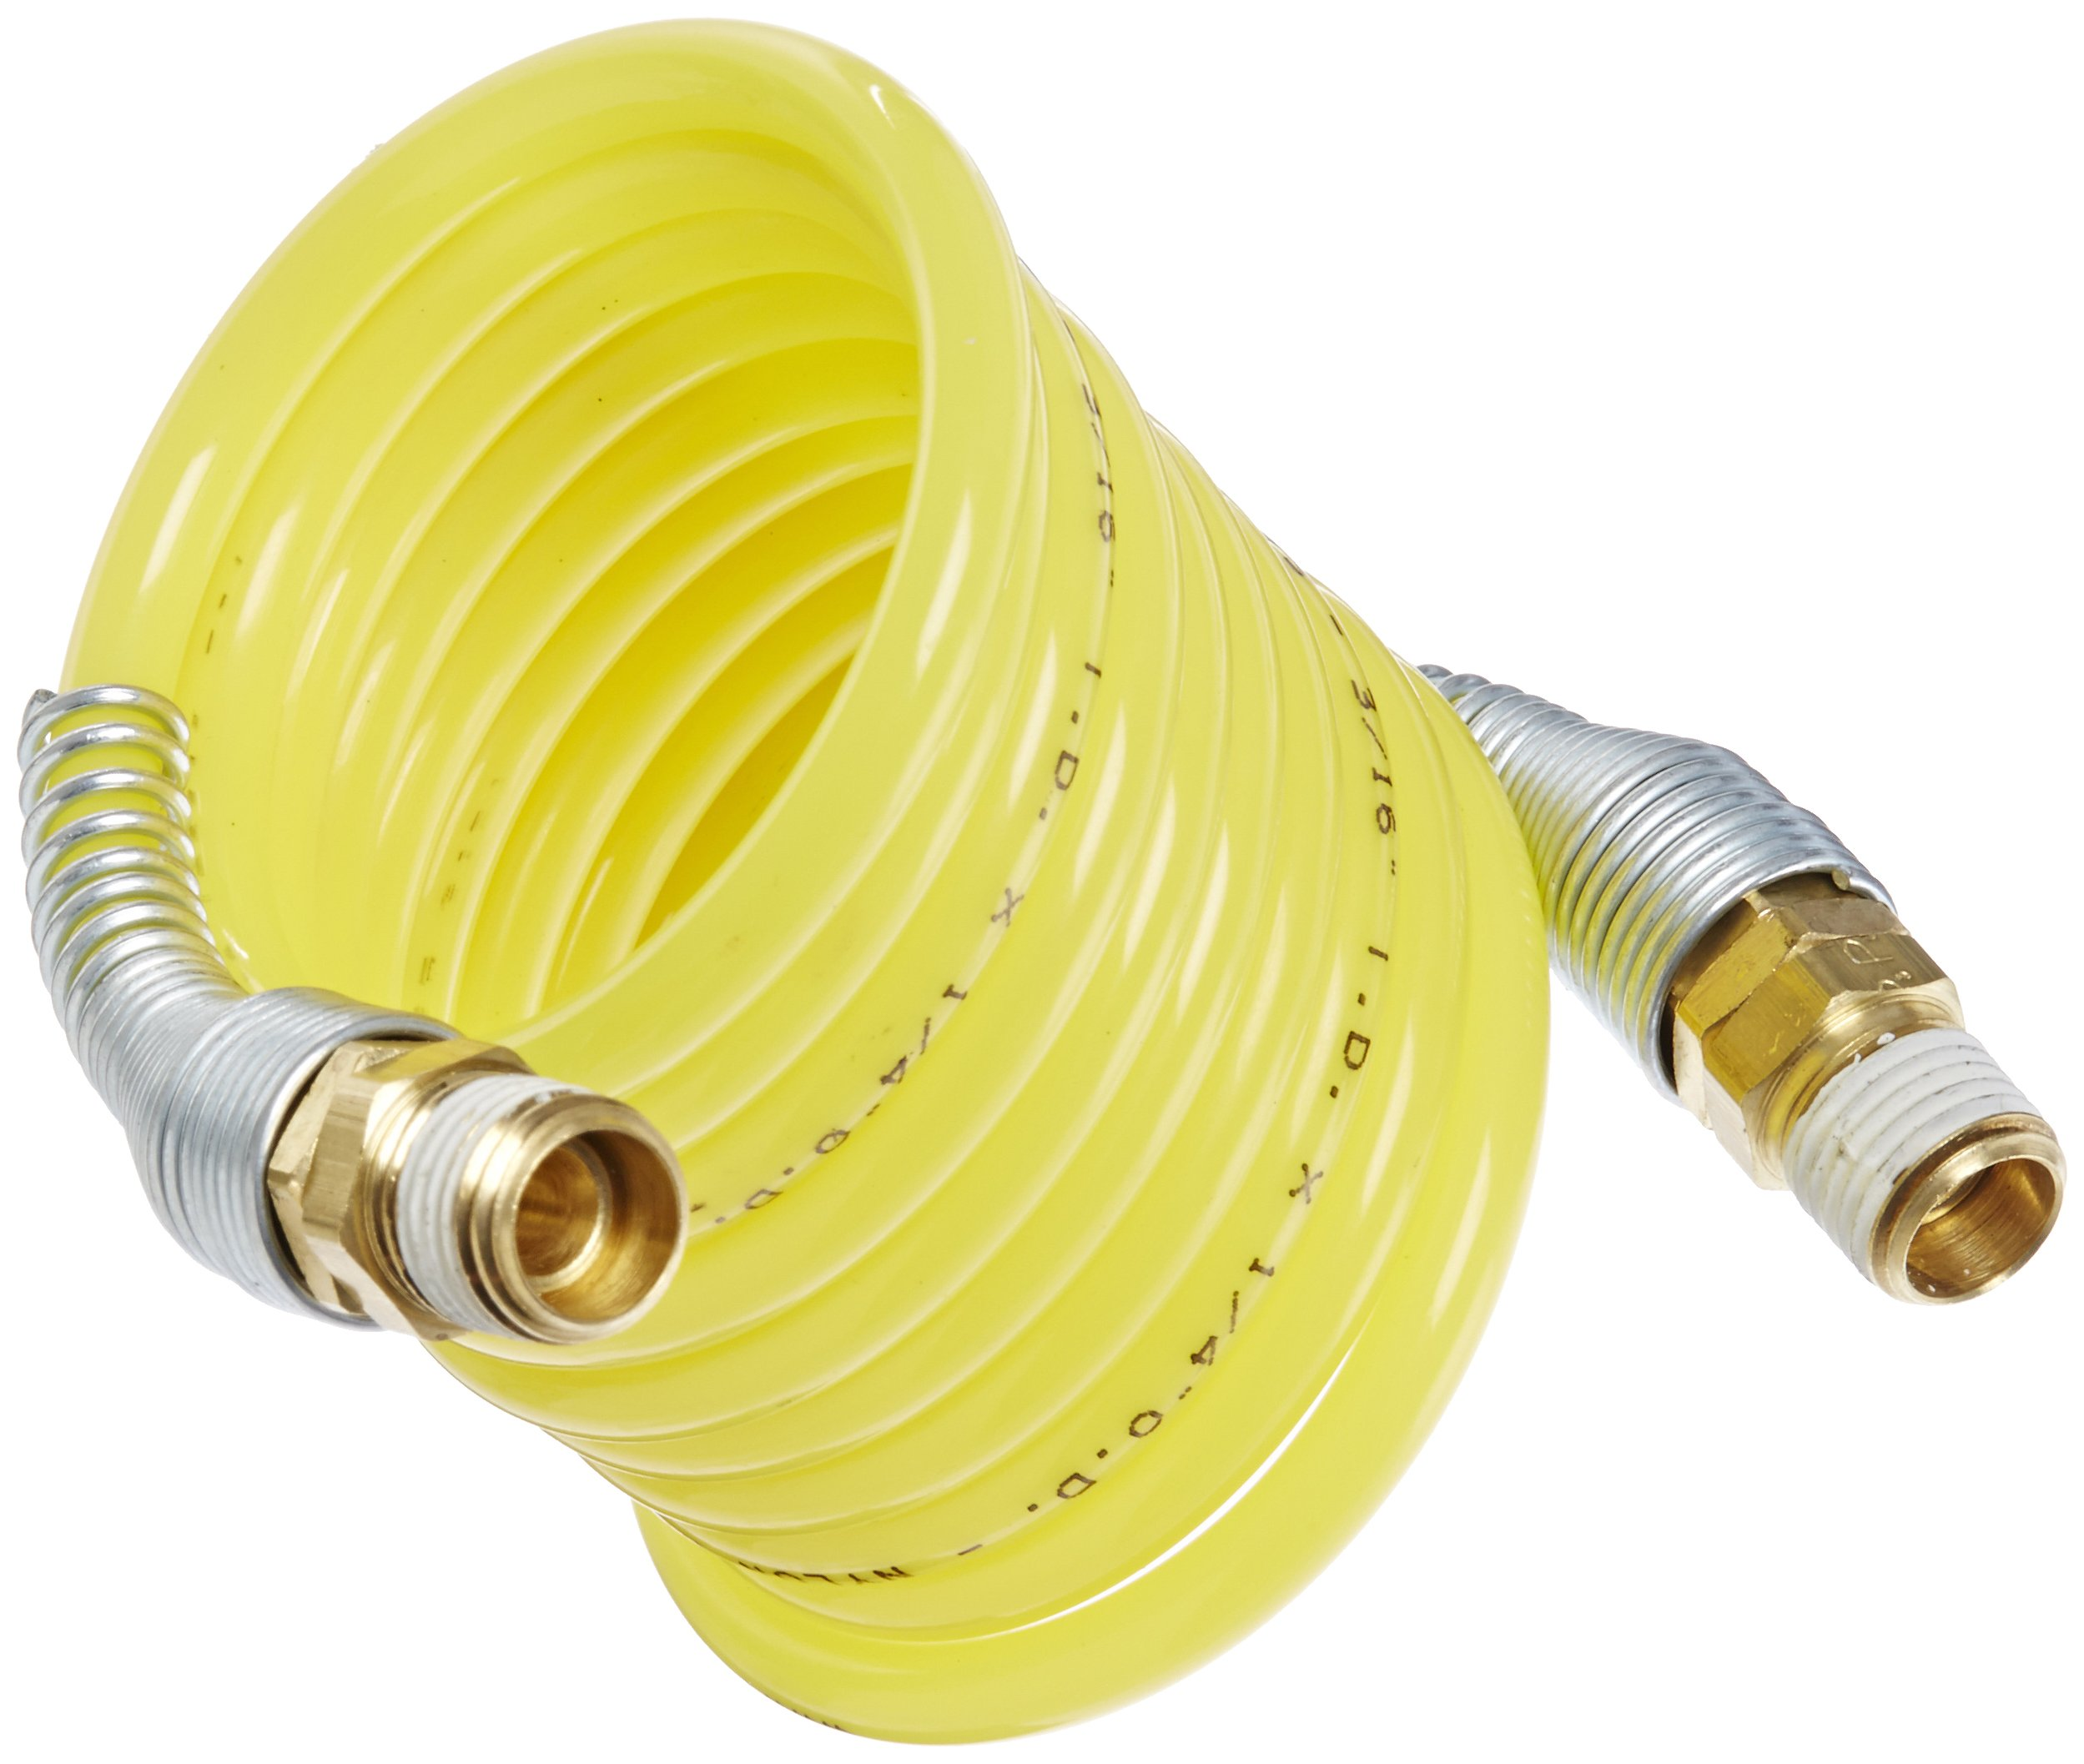 Legris Nylon 12 Self-Recoiling Hose Assembly with Brass Swivel Fittings, Yellow, 1/4 OD, 250 psi, 5 feet Working Length